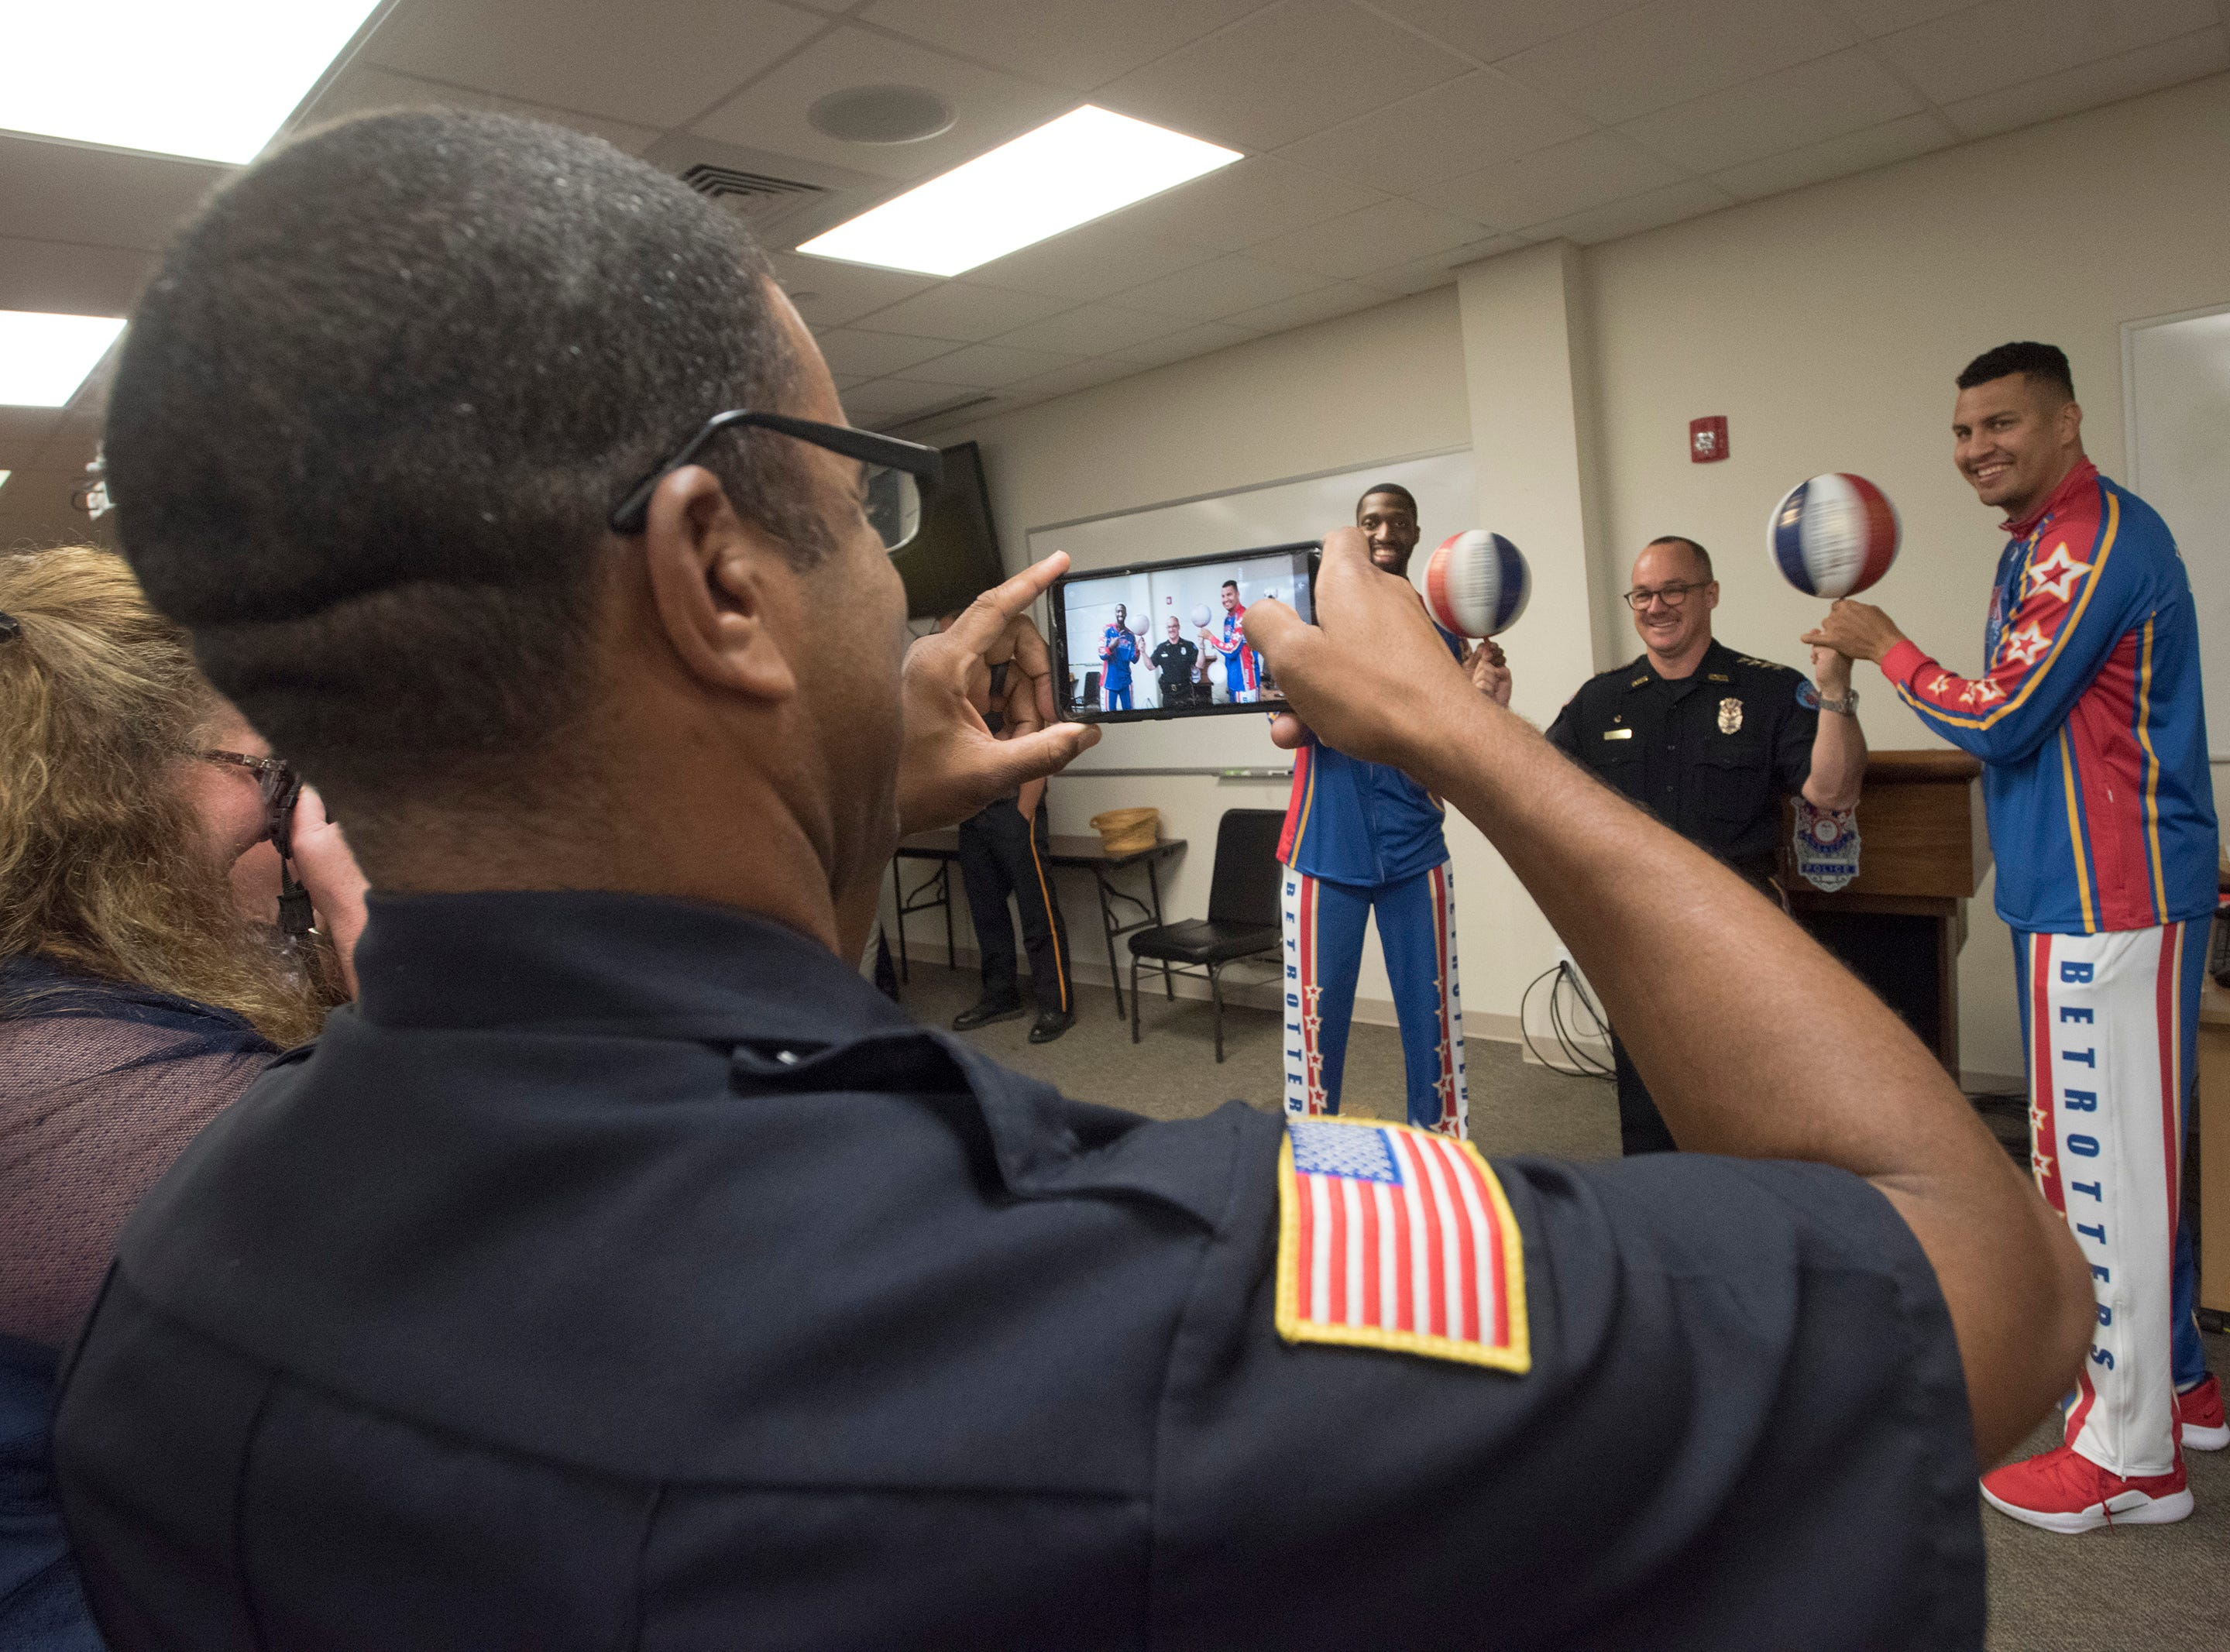 Bulldog Mack and El Gato Melendez, two members of the Harlem Globetrotters, teaches Pensacola Police chief Tommi Lyter as few tricks on Wednesday, Nov. 7, 2018.